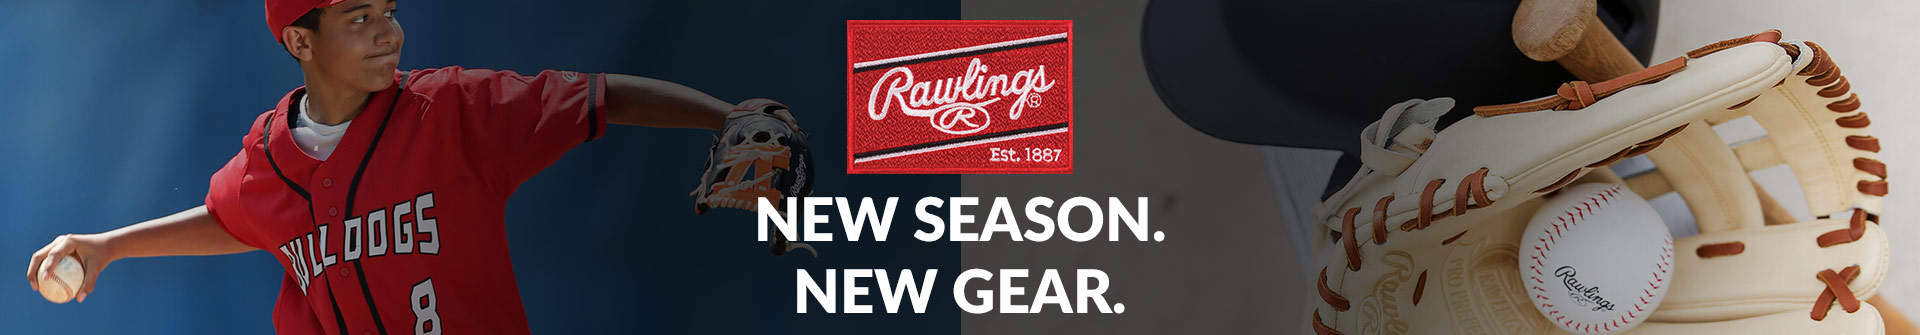 Browse our wide selection of Rawlings baseball gloves, baseball bats, and baseball equipment available for sale at Source For Sports